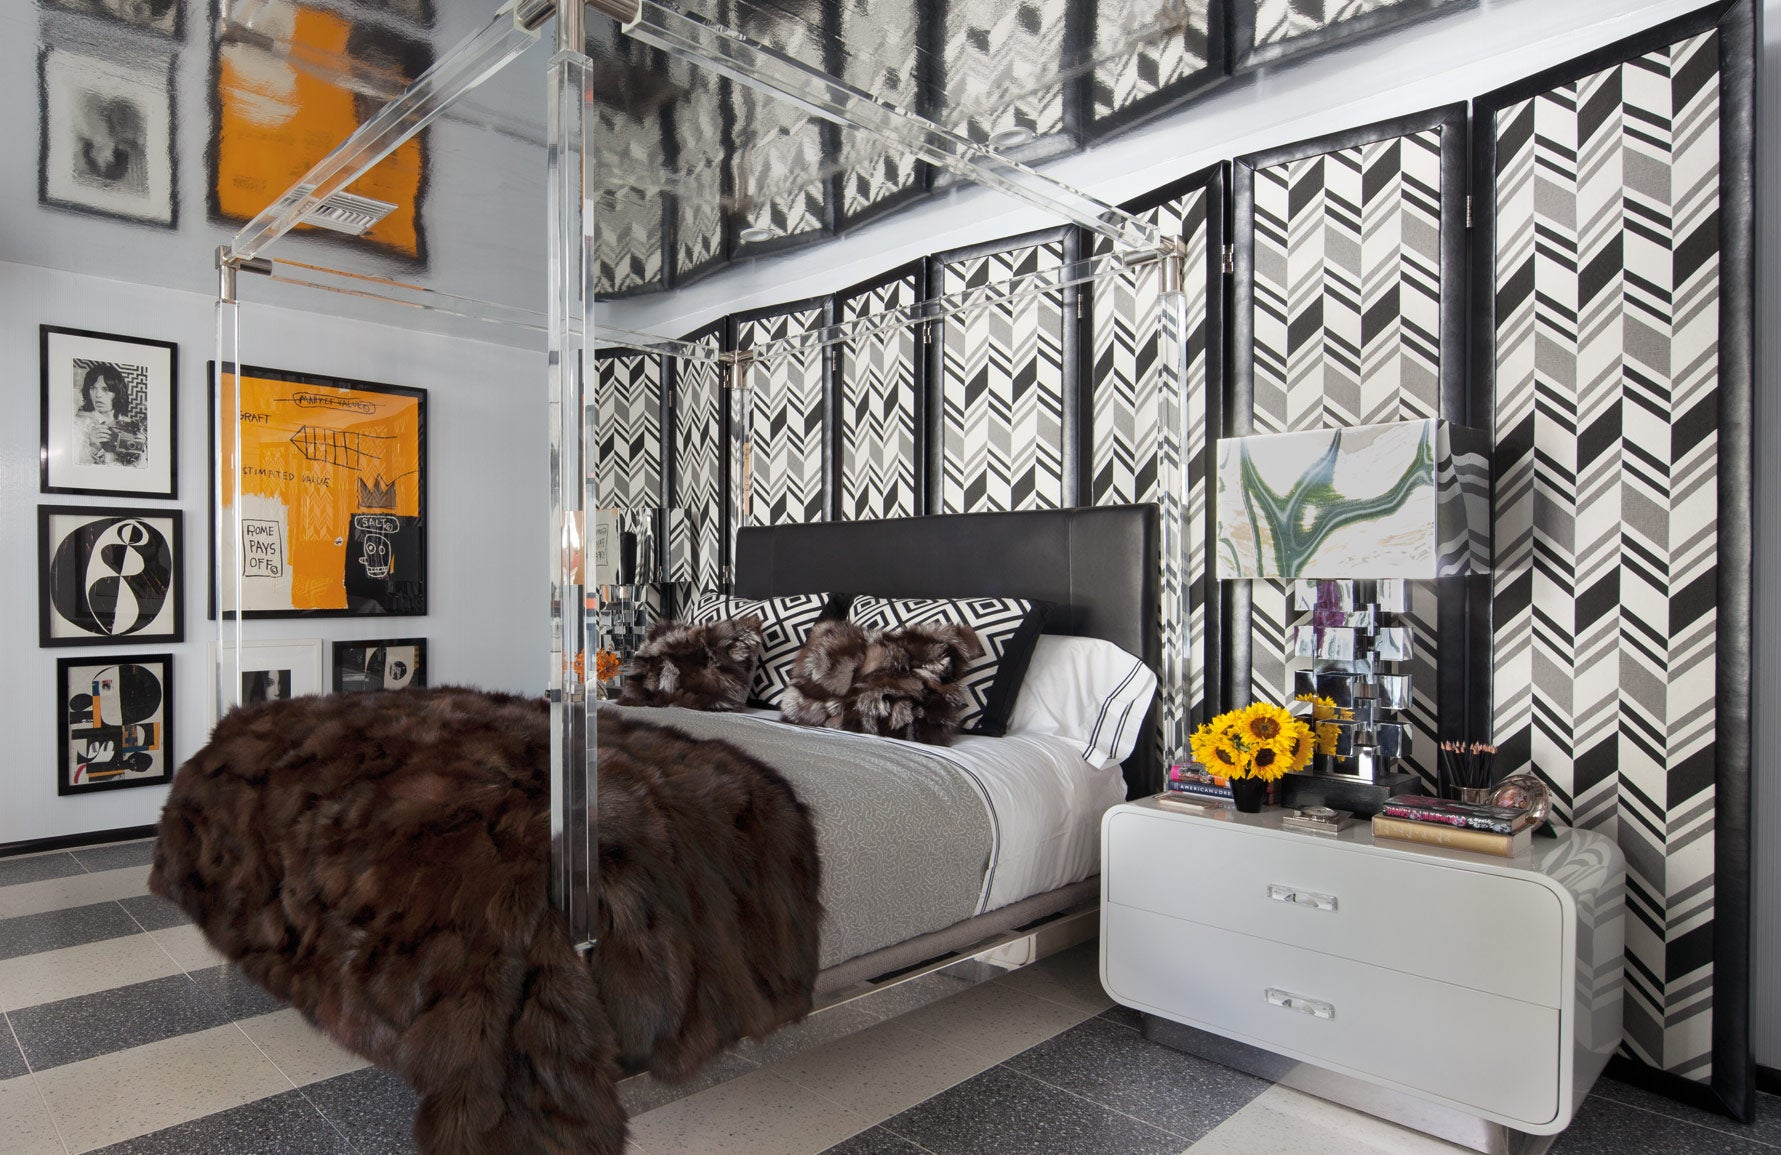 Monochrome bedroom | Martyn Lawrence Bullard home Palm Springs | Celebrity interior designer | Read more in The Luxurist at LuxDeco.com